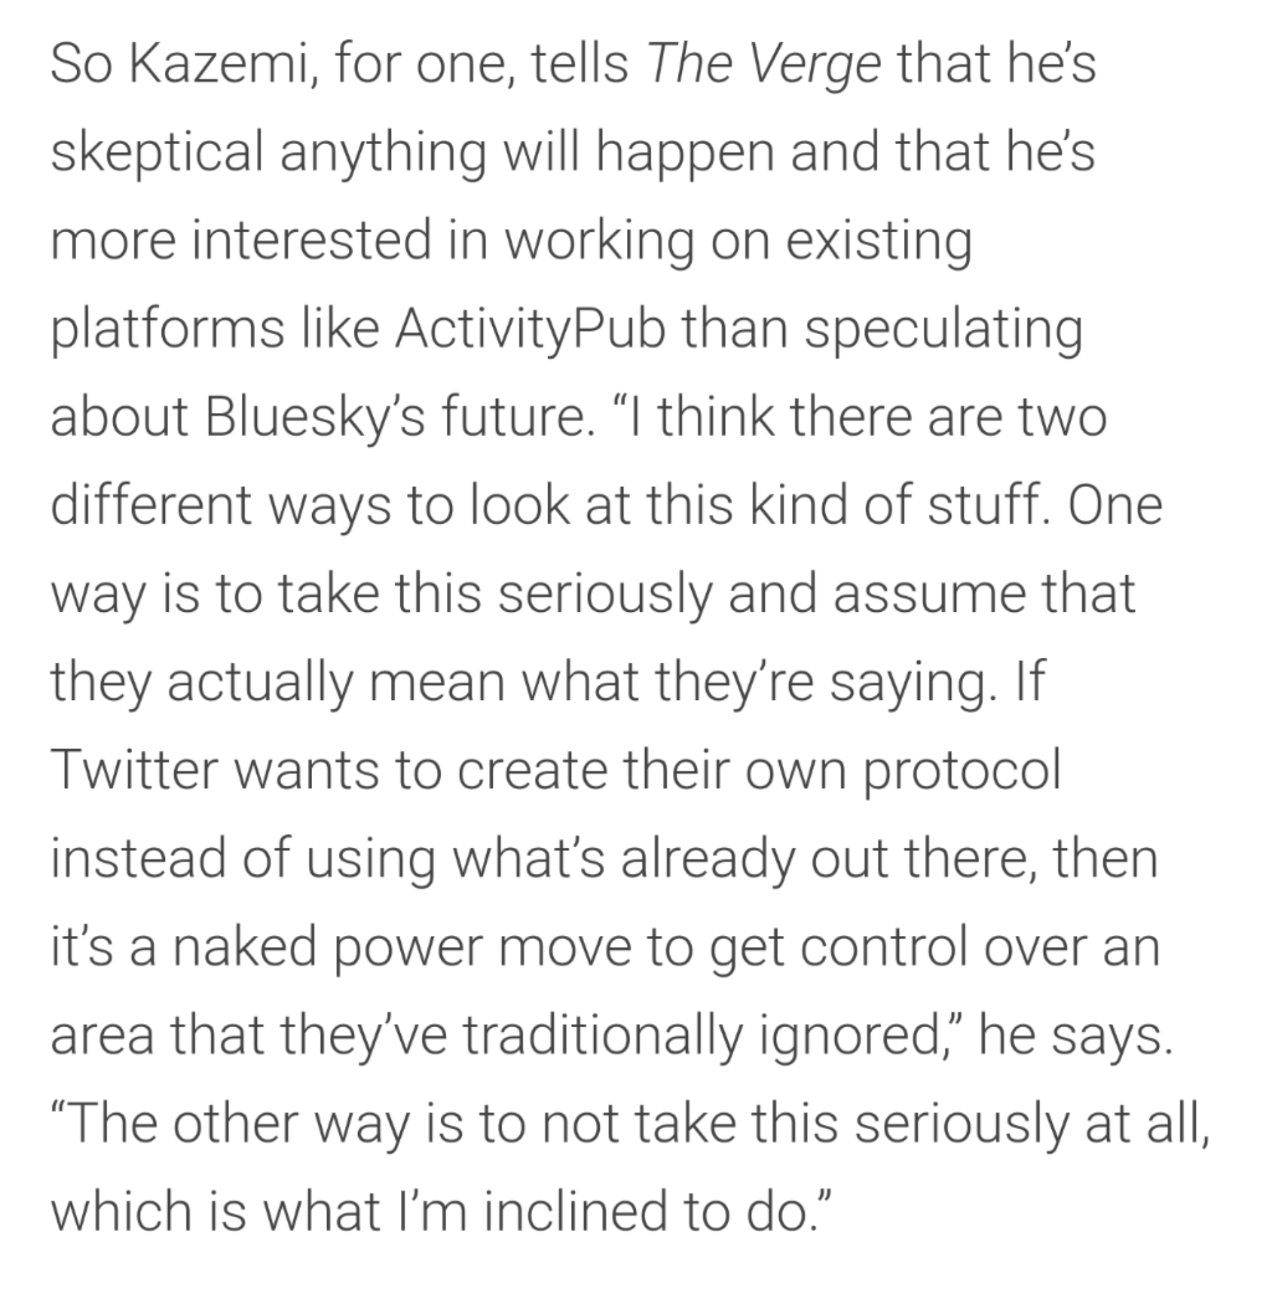 """So Kazemi, for one, tells The Verge that he's skeptical anything will happen and that he's more interested in working on existing platforms like ActivityPub than speculating about Bluesky's future. """"I think there are two different ways to look at this kind of stuff. One way is to take this seriously and assume that they actually mean what they're saying. If Twitter wants to create their own protocol instead of using what's already out there, then it's a naked power move to get control over an area that they've traditionally ignored,"""" he says. """"The other way is to not take this seriously at all, which is what I'm inclined to do."""""""